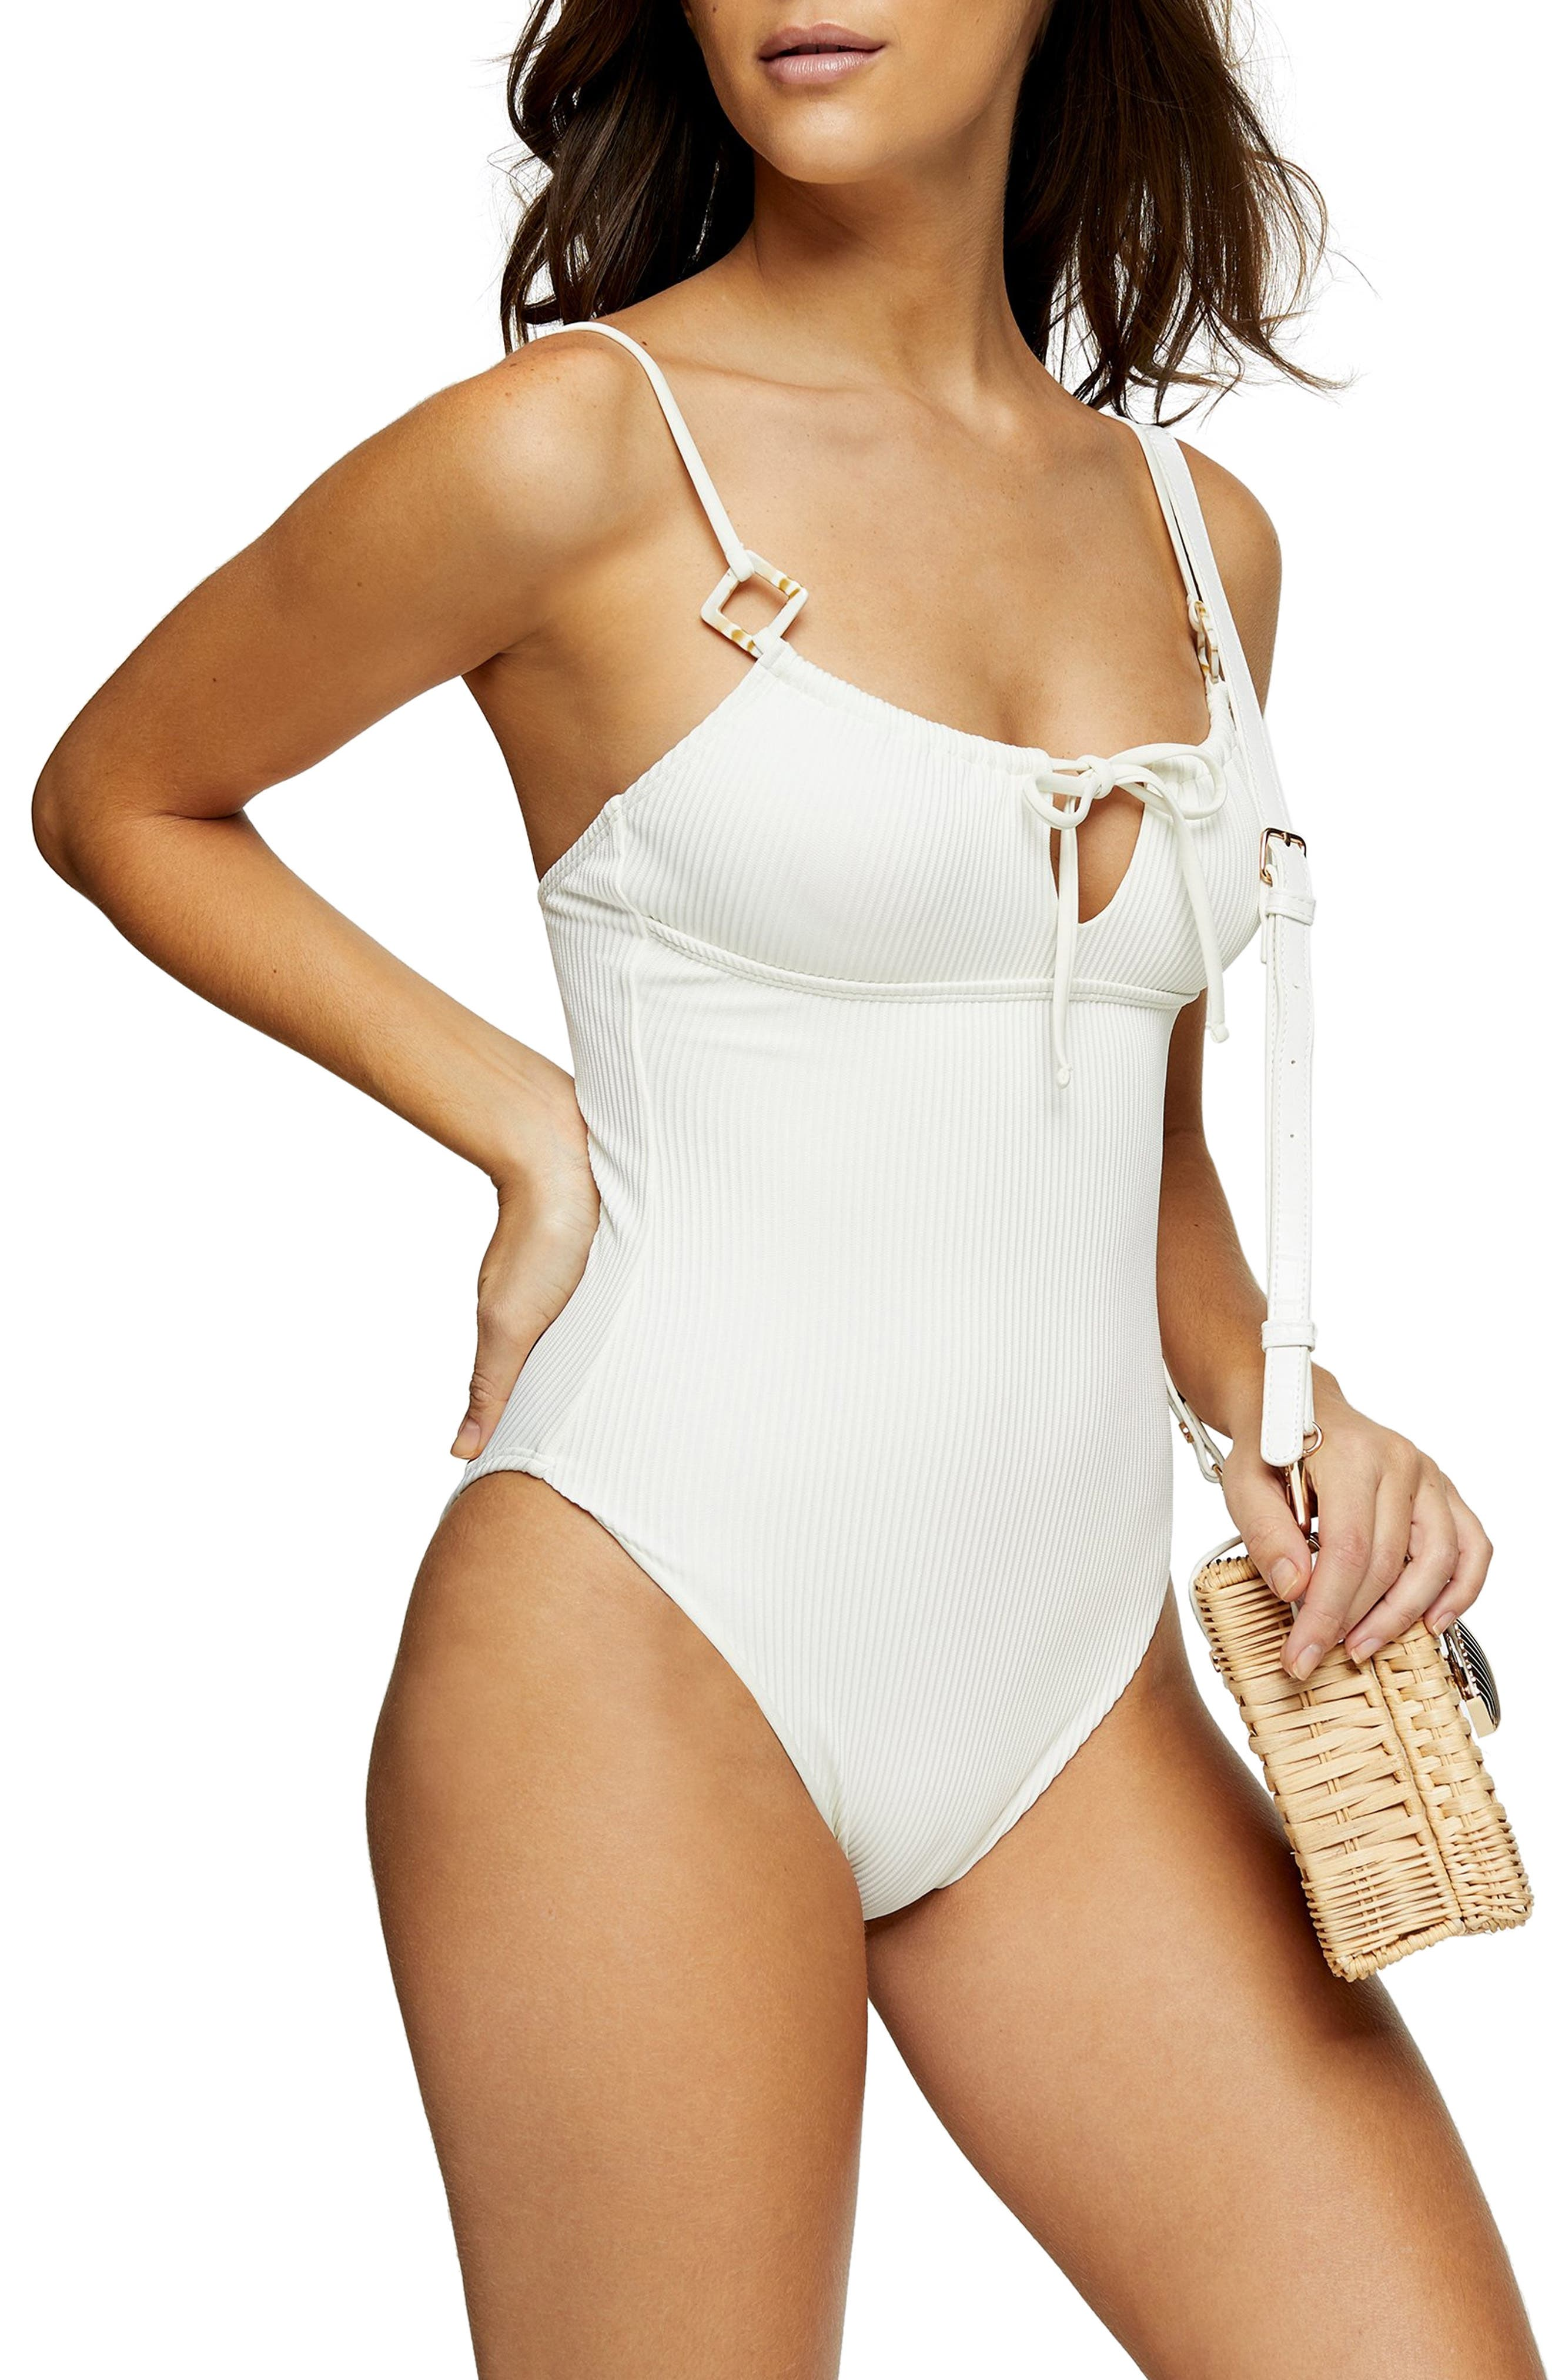 Topshop Women's Topshop Ribbed One Piece Swimsuit, Size 10 US Ivory from | Daily Mail